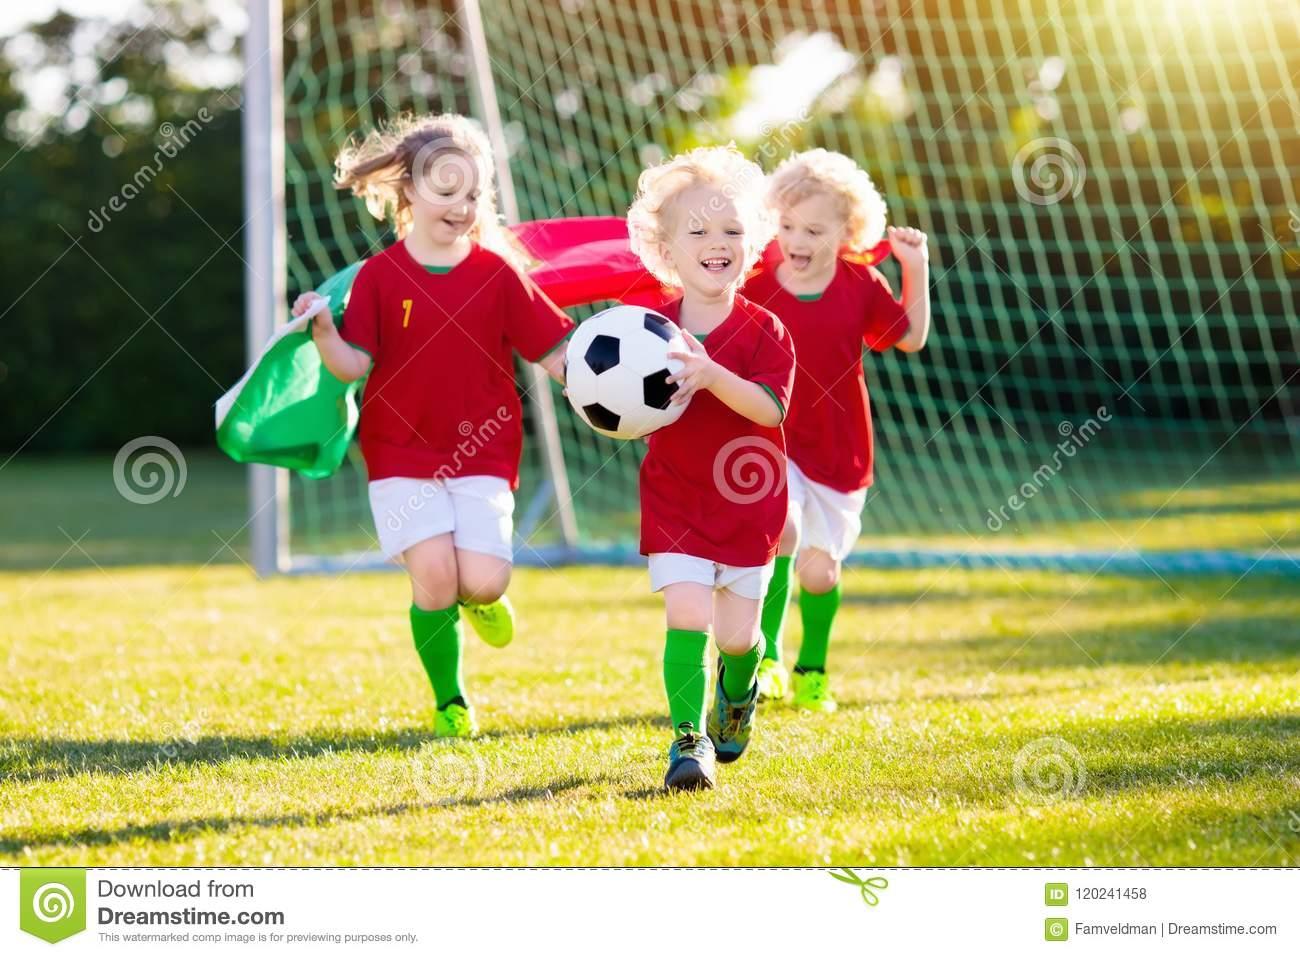 Should Kids Be Allowed To Play Soccer >> Portugal Football Fan Kids Children Play Soccer Stock Photo